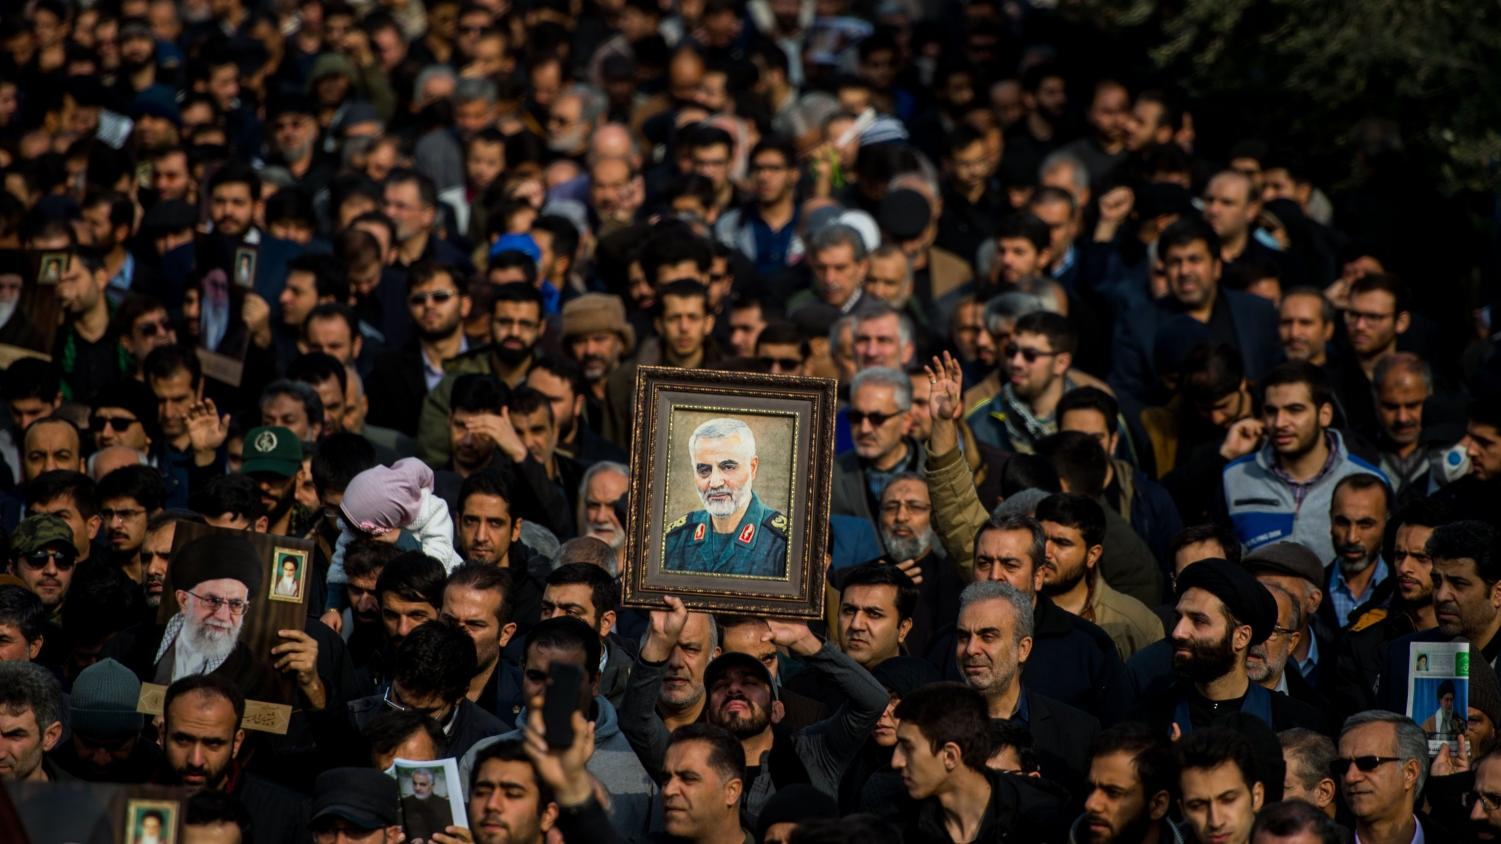 Protesters in Tehran on January 3 after the death of Soleimani.